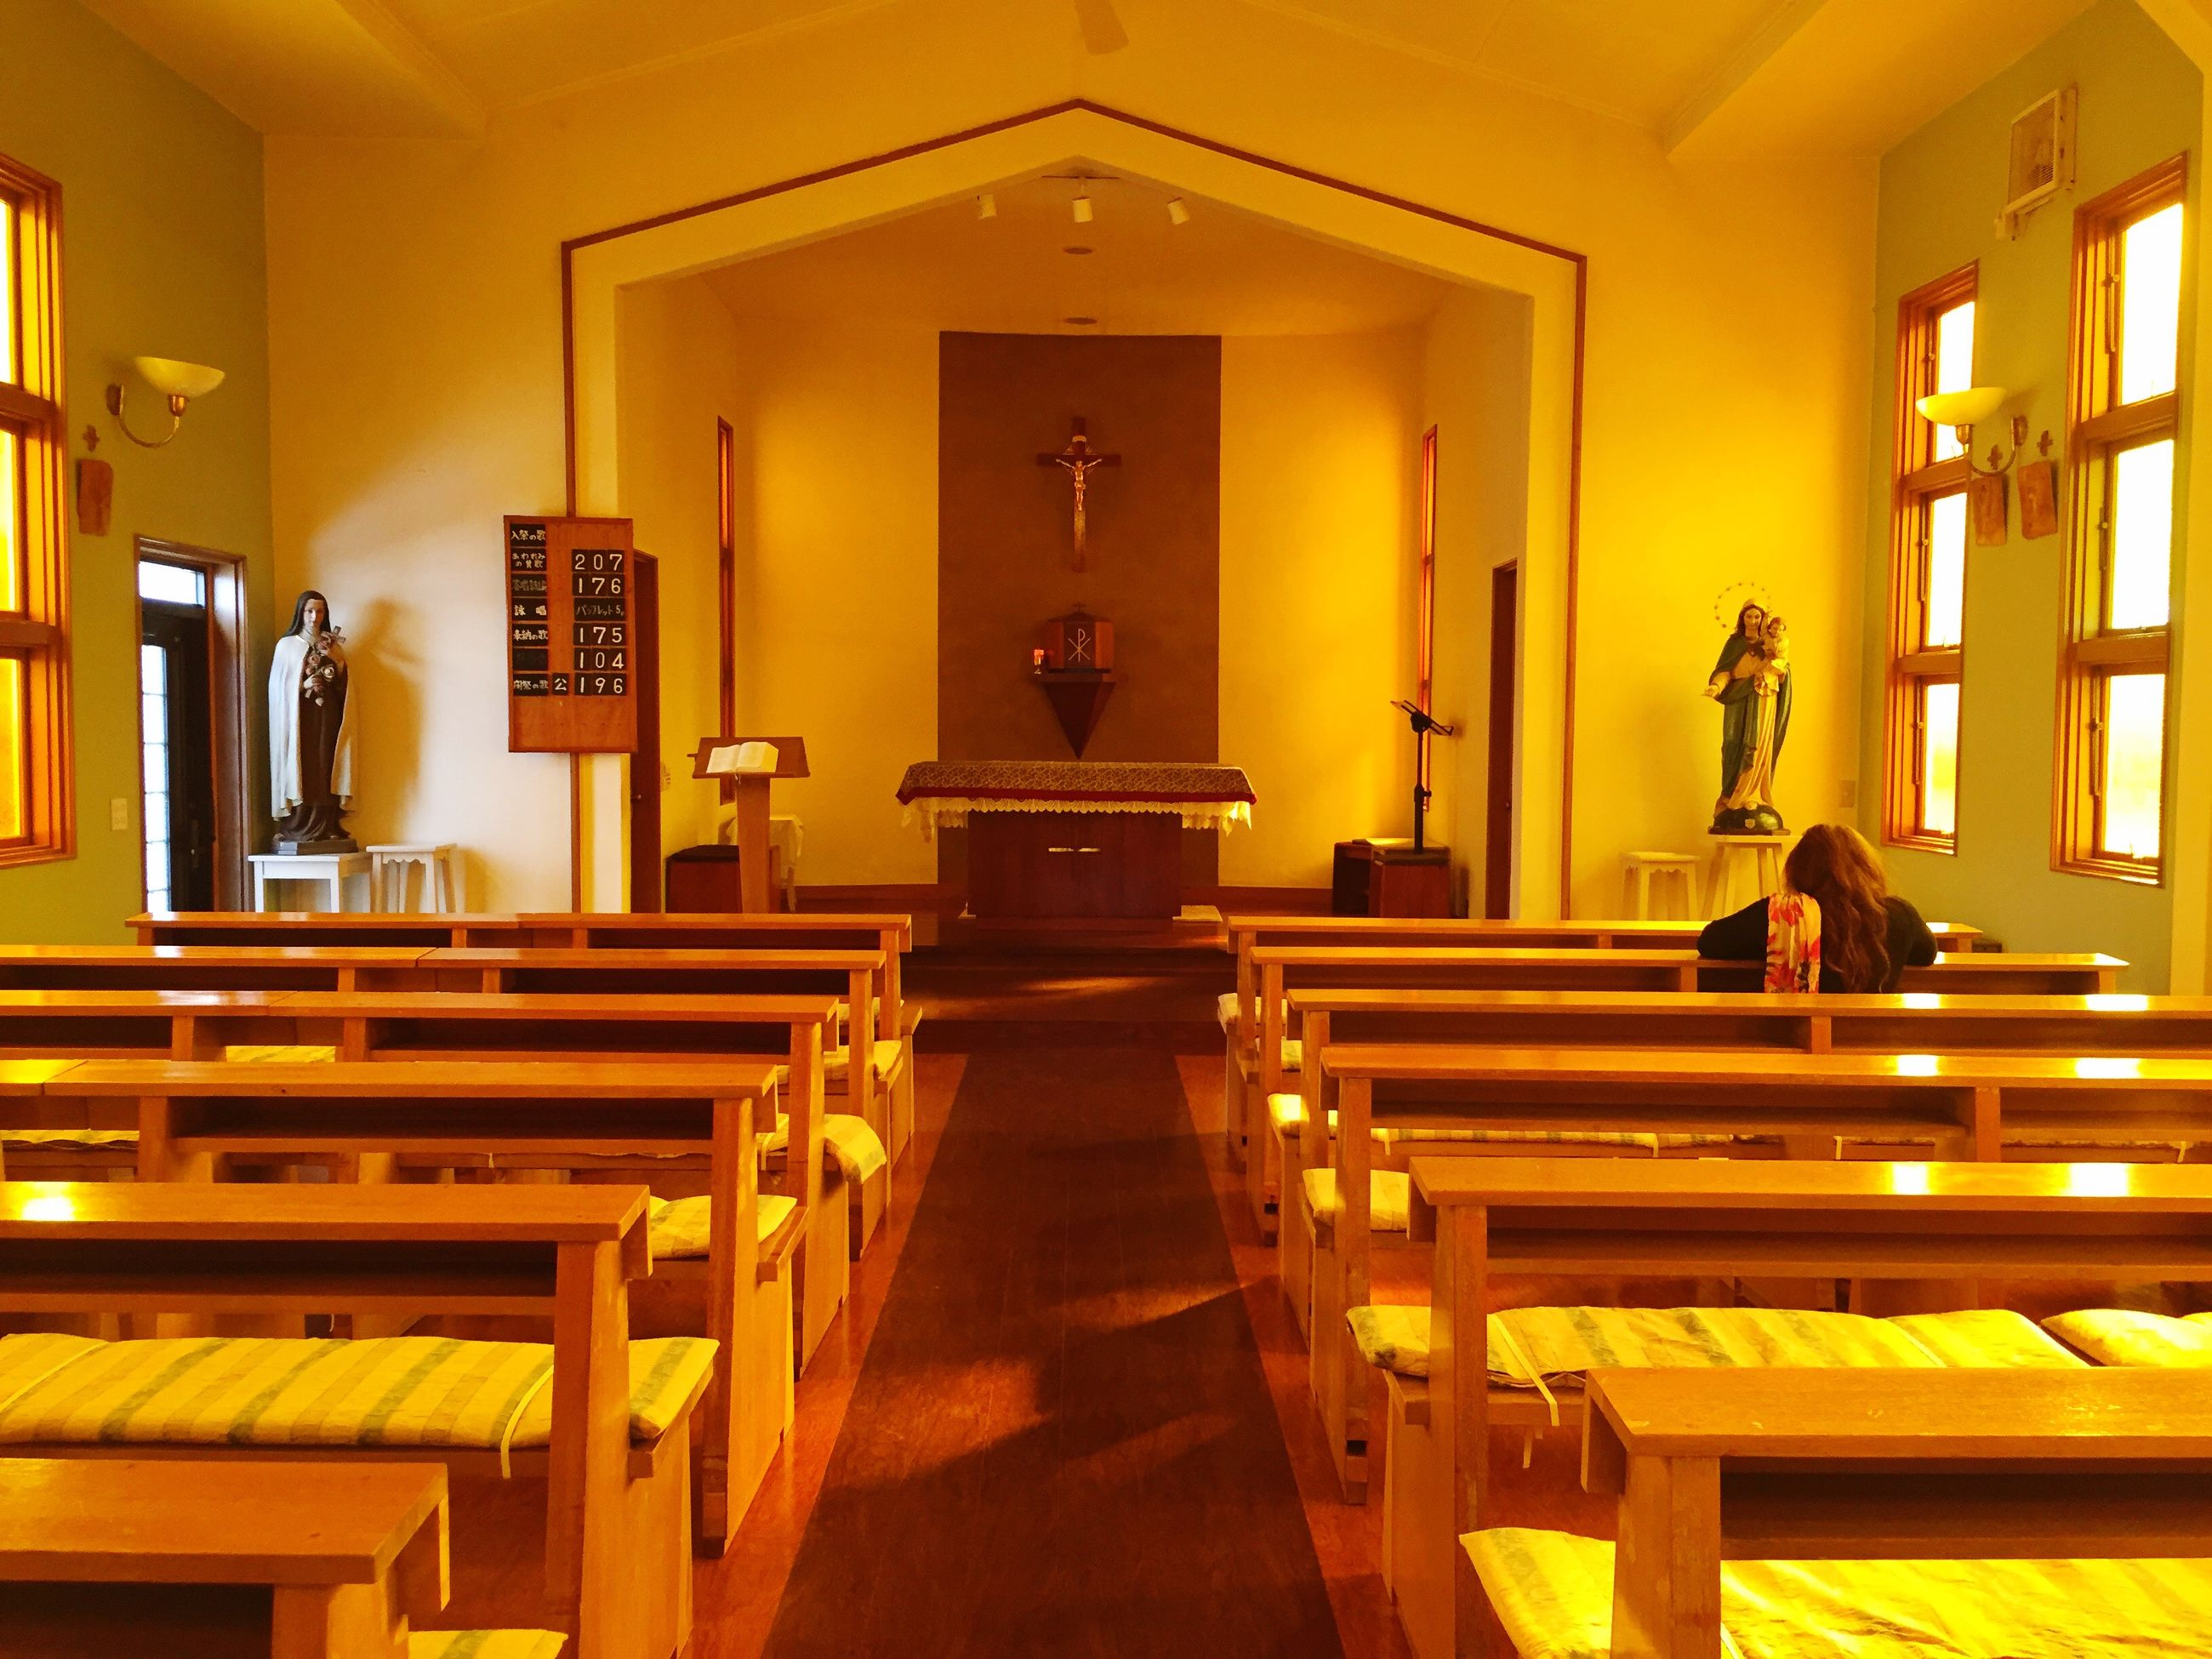 indoors, religion, no people, place of worship, pew, architecture